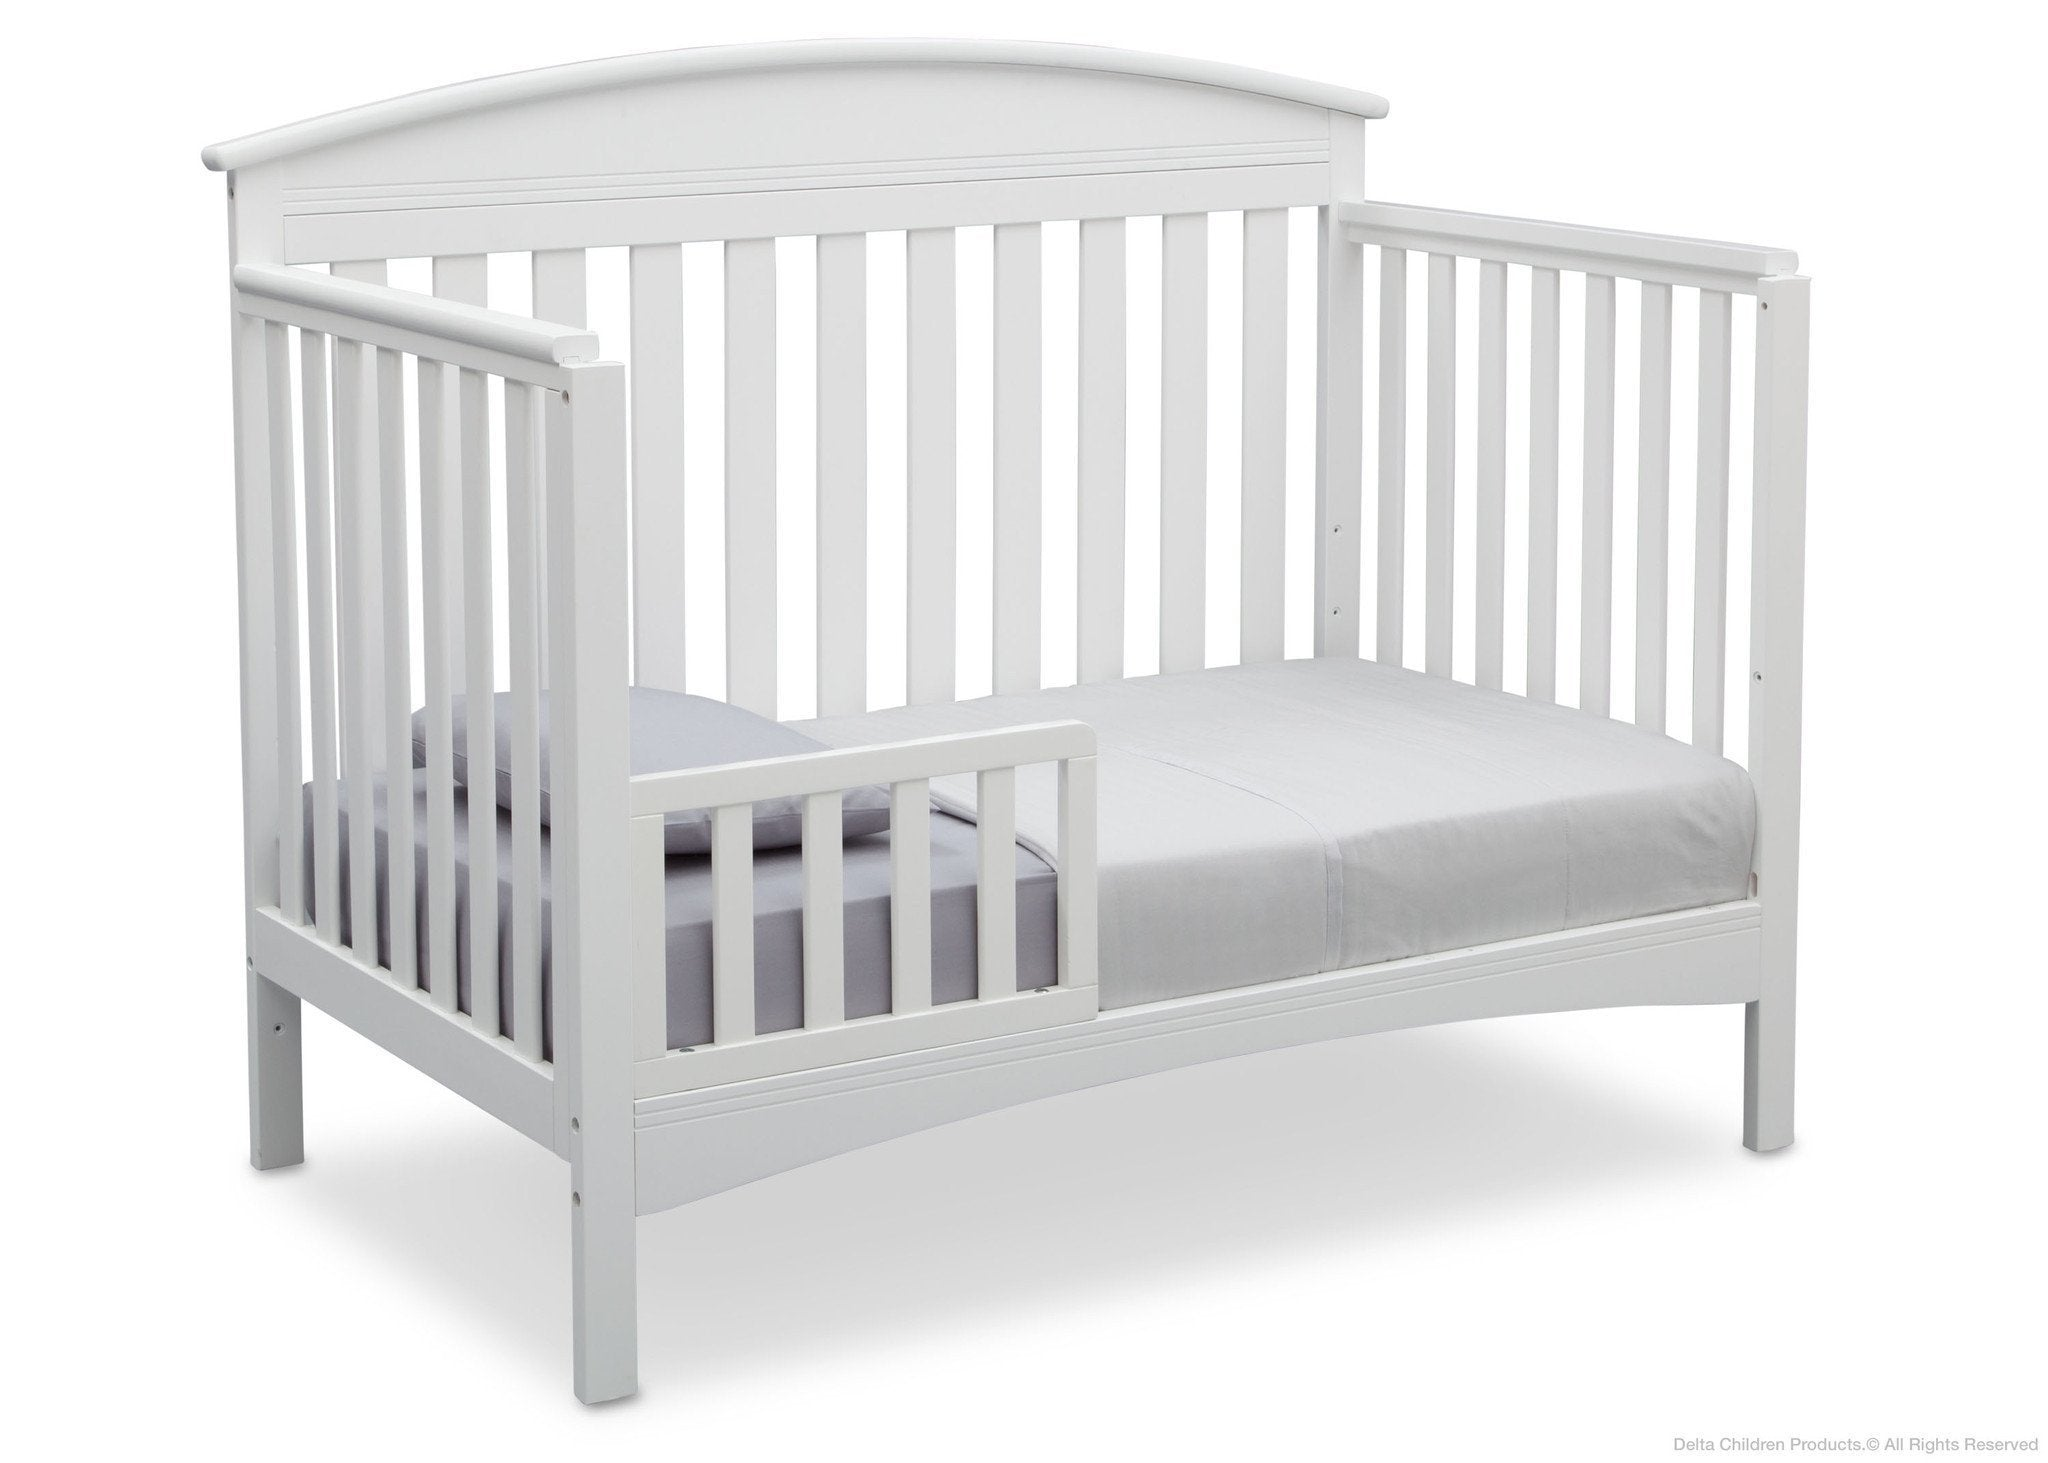 Delta Children Bianca (130) Abby 4-in-1 Crib Toddler Bed Conversion Side View b4b